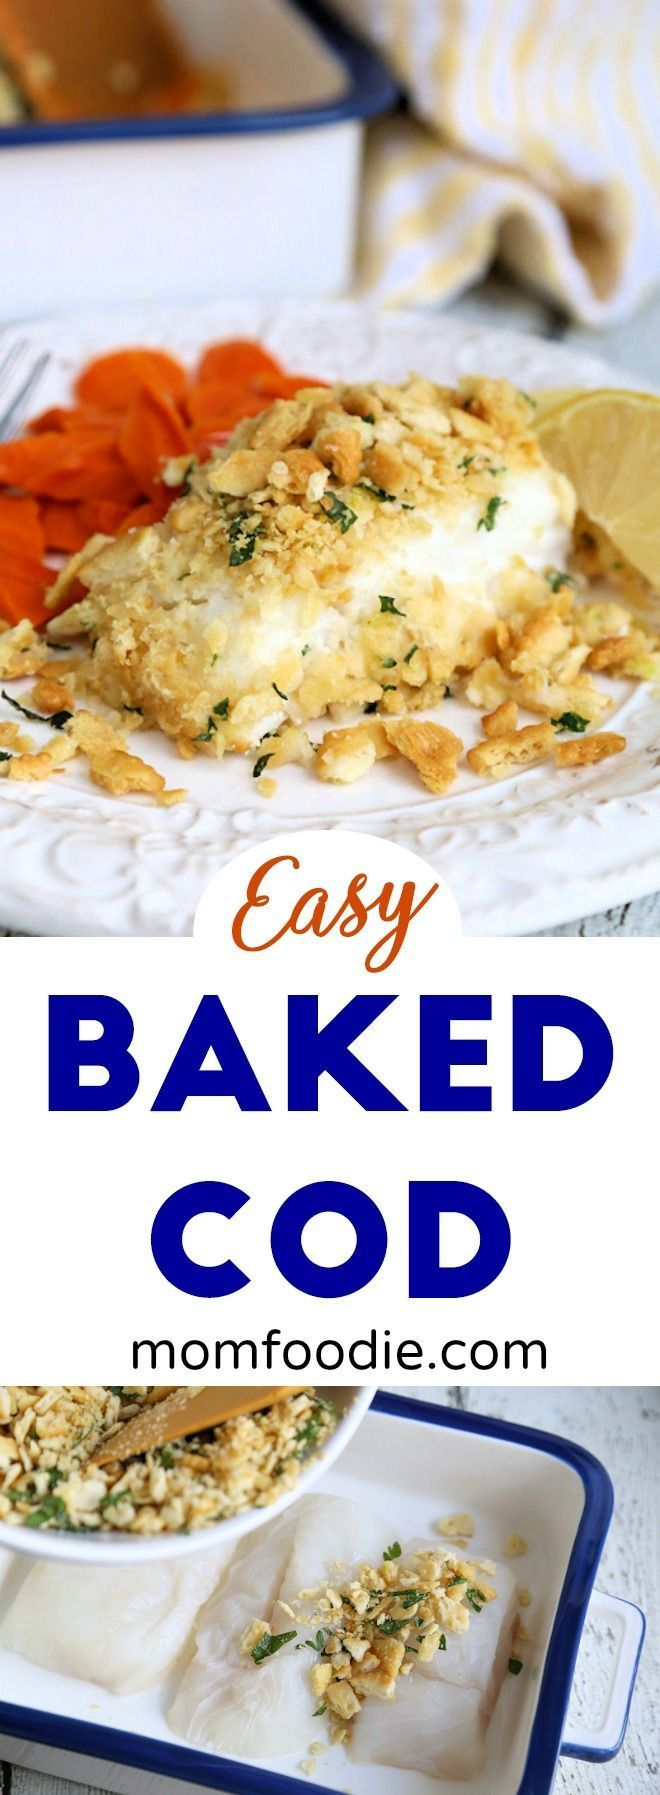 Baked Cod - easy baked cod recipe with craker crumb topping #seafood #cod #fish #fishrecipe via @MomFoodie